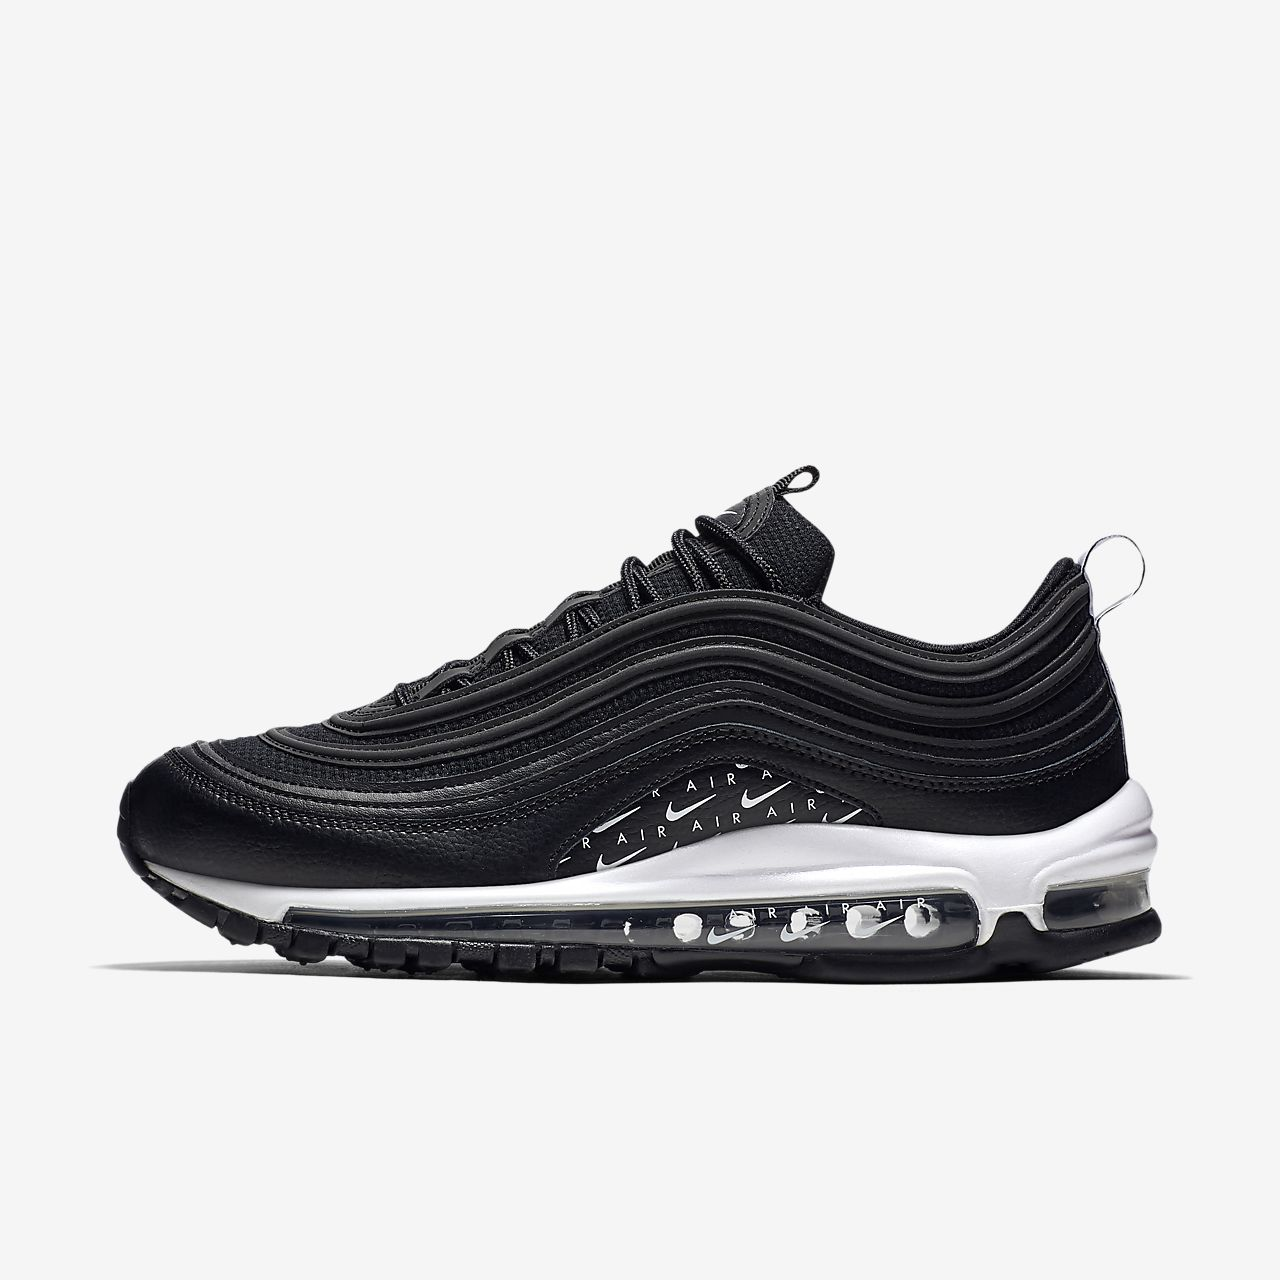 Nike Air Max 97 LX Overbranded Women's Shoe